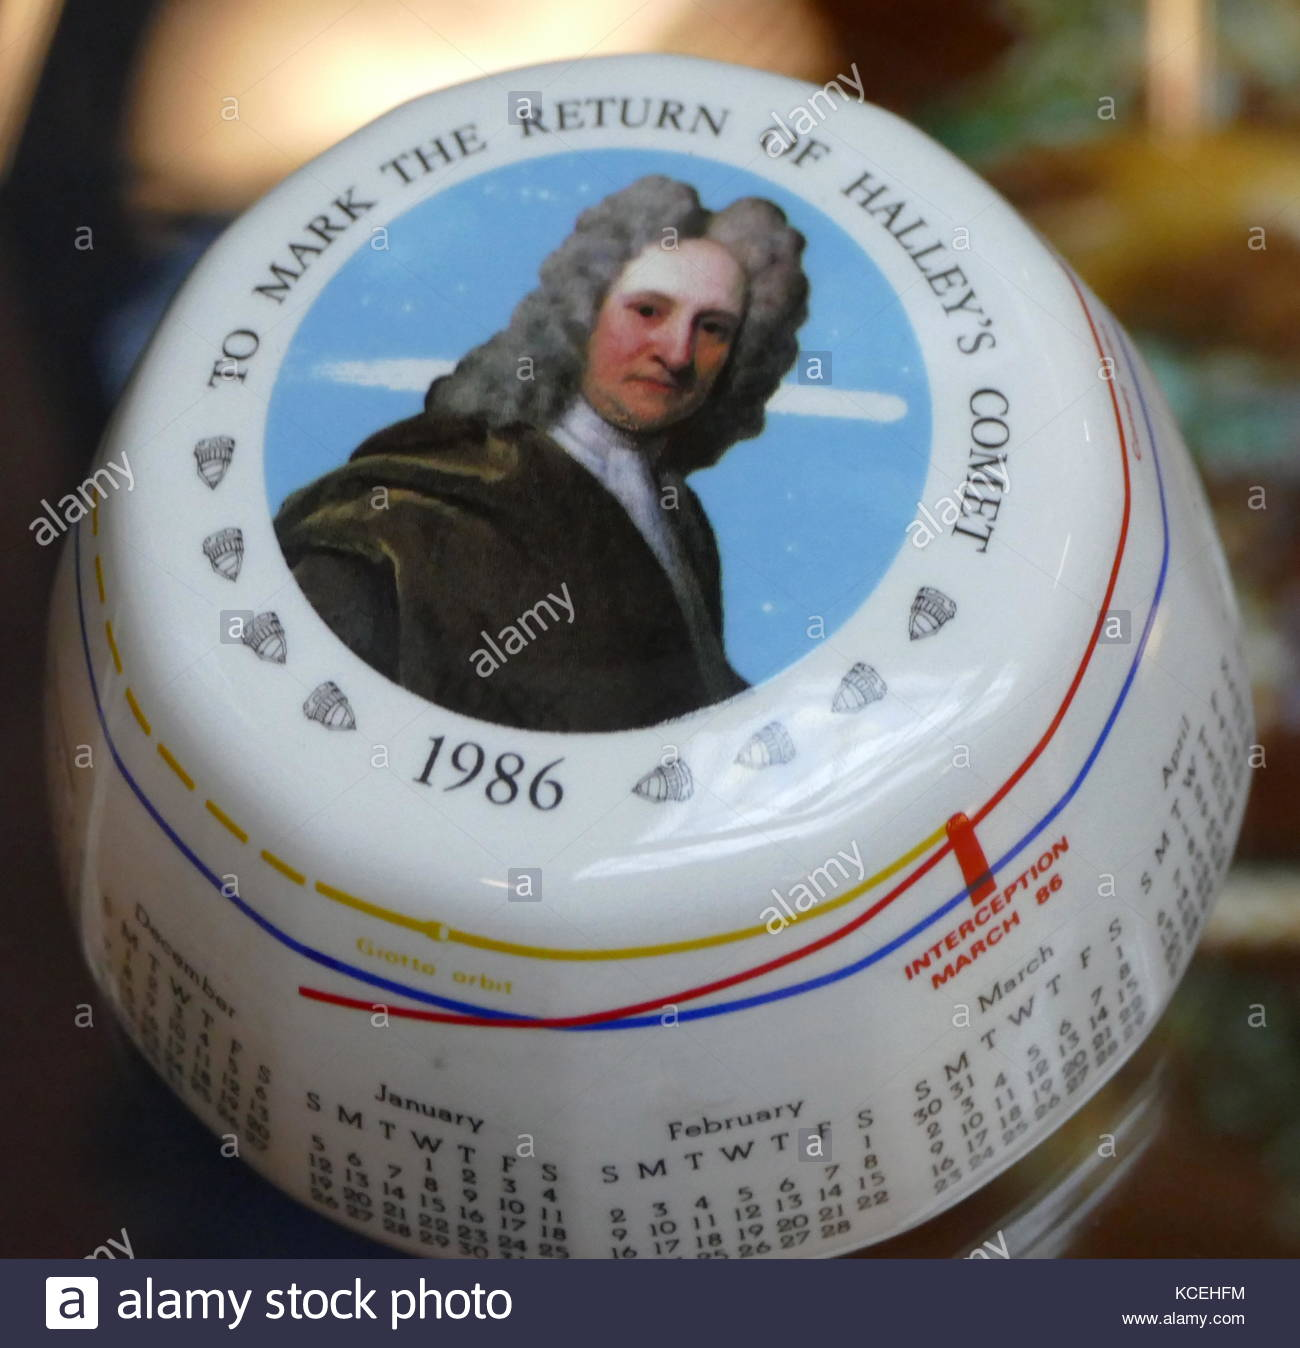 Portrait of Sir Edmund Halley on a commemorative paperweight, to mark the return of Halley's Comet 185-86 - Stock Image